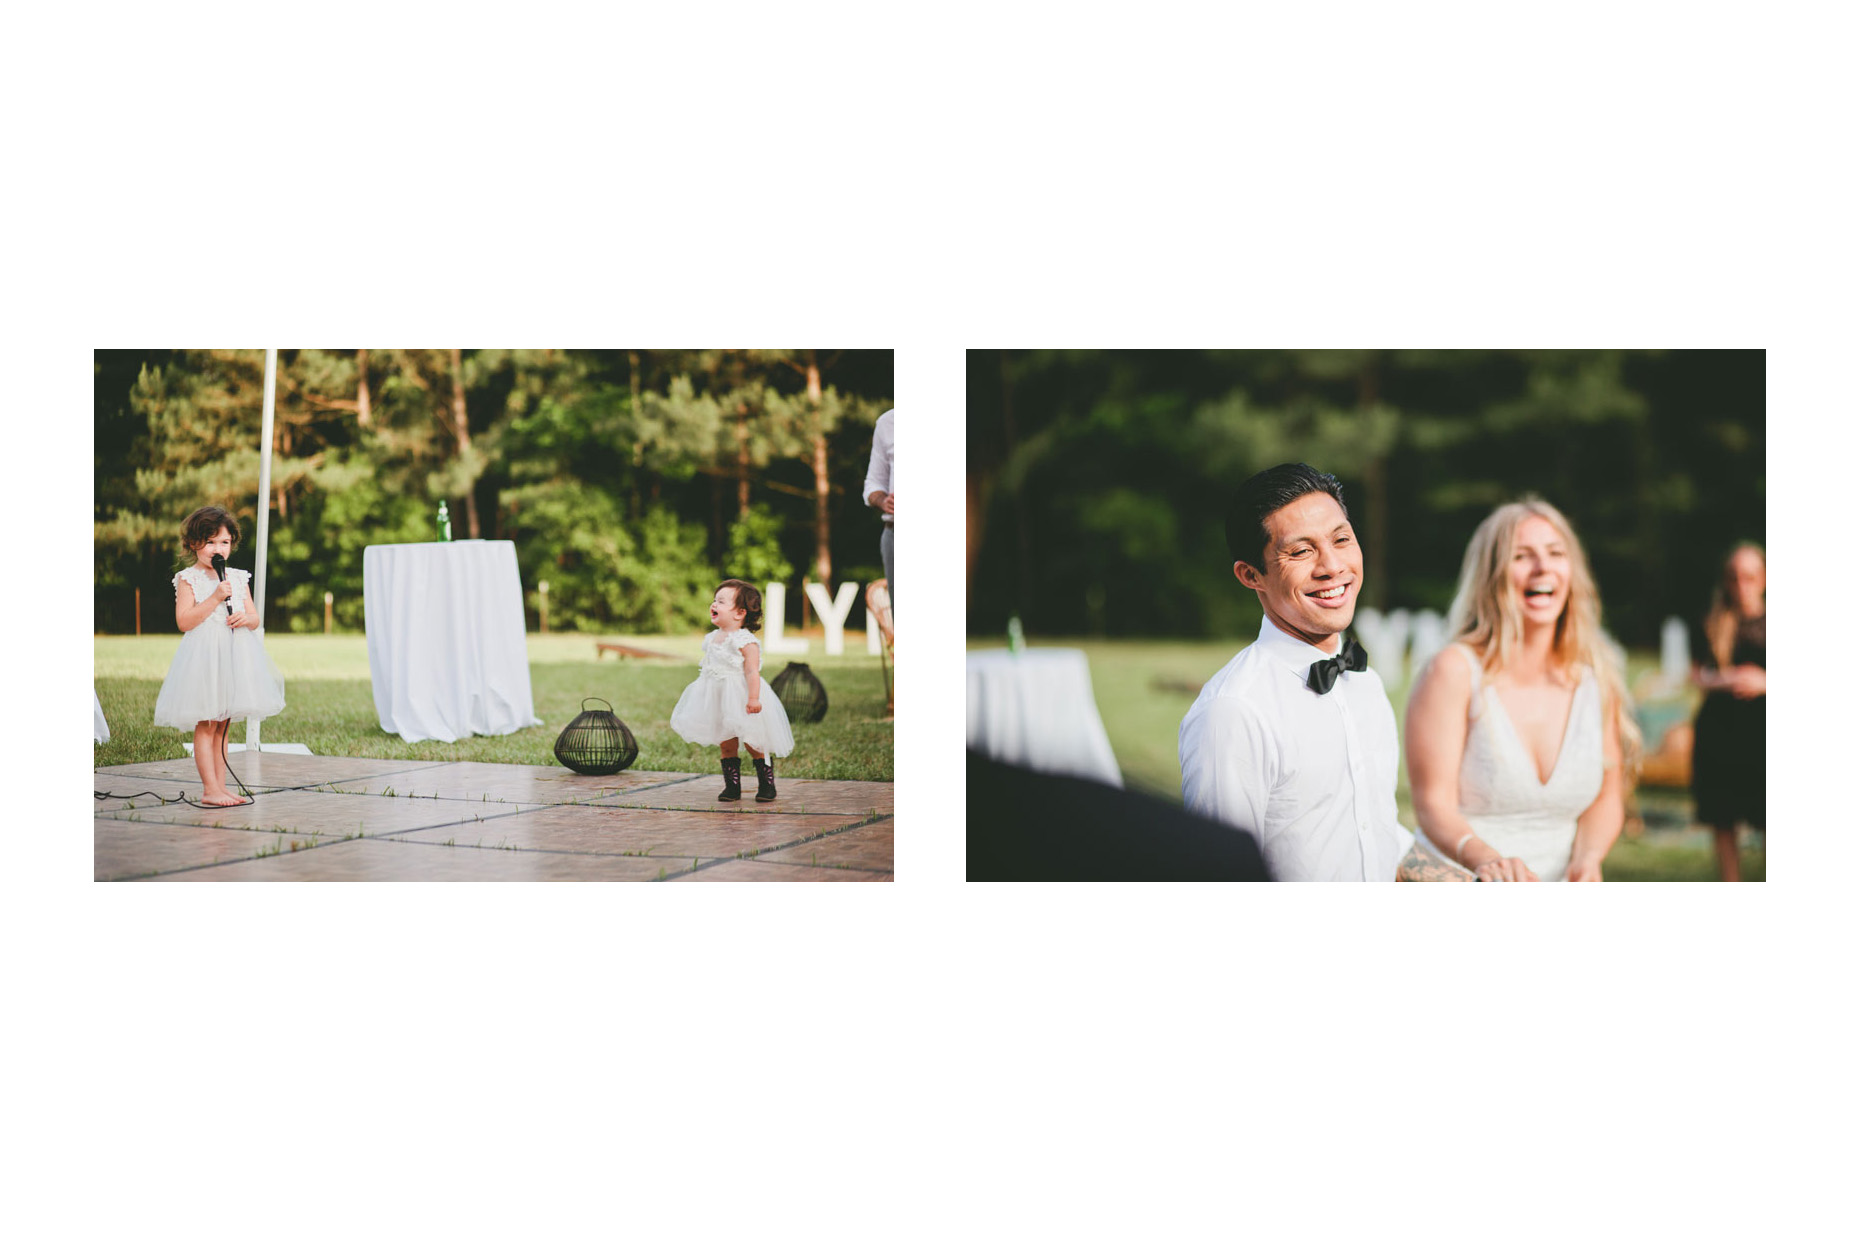 Wilmingtonwrightsvillebeacheditorialweddingphotographer